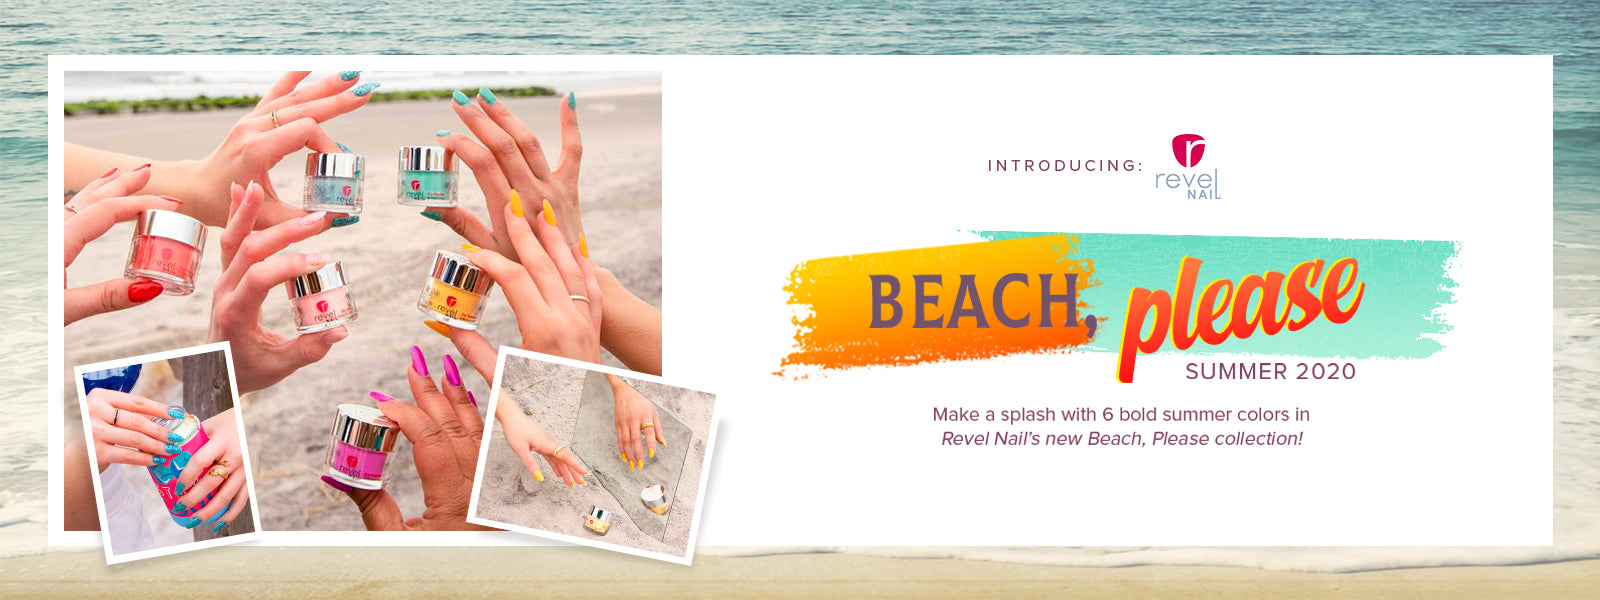 Revel Nail Beach, Please Summer 2020 Collection